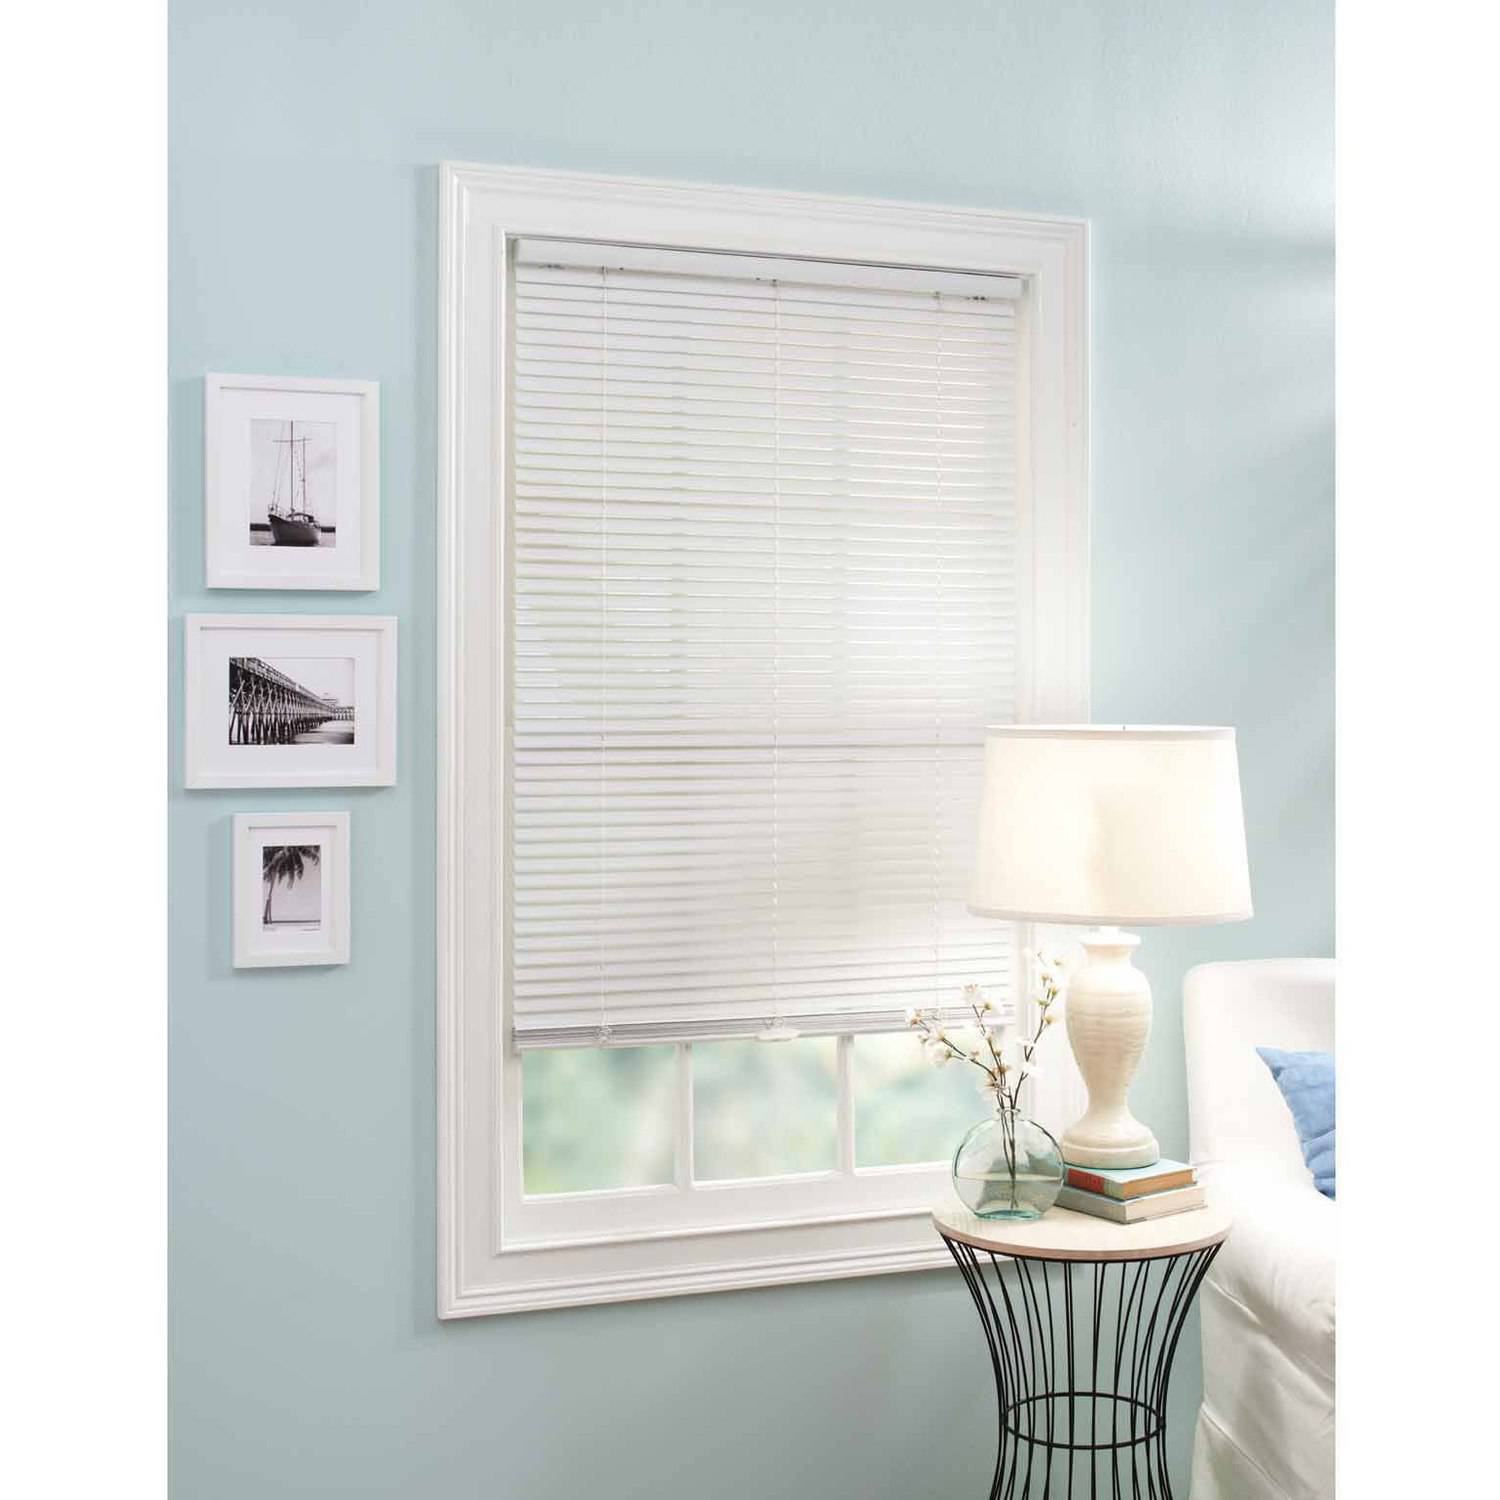 wall door blue plant freestanding cram and well iron home horizontal blinds shelf cast stand table half cordless with depot round paint window wood